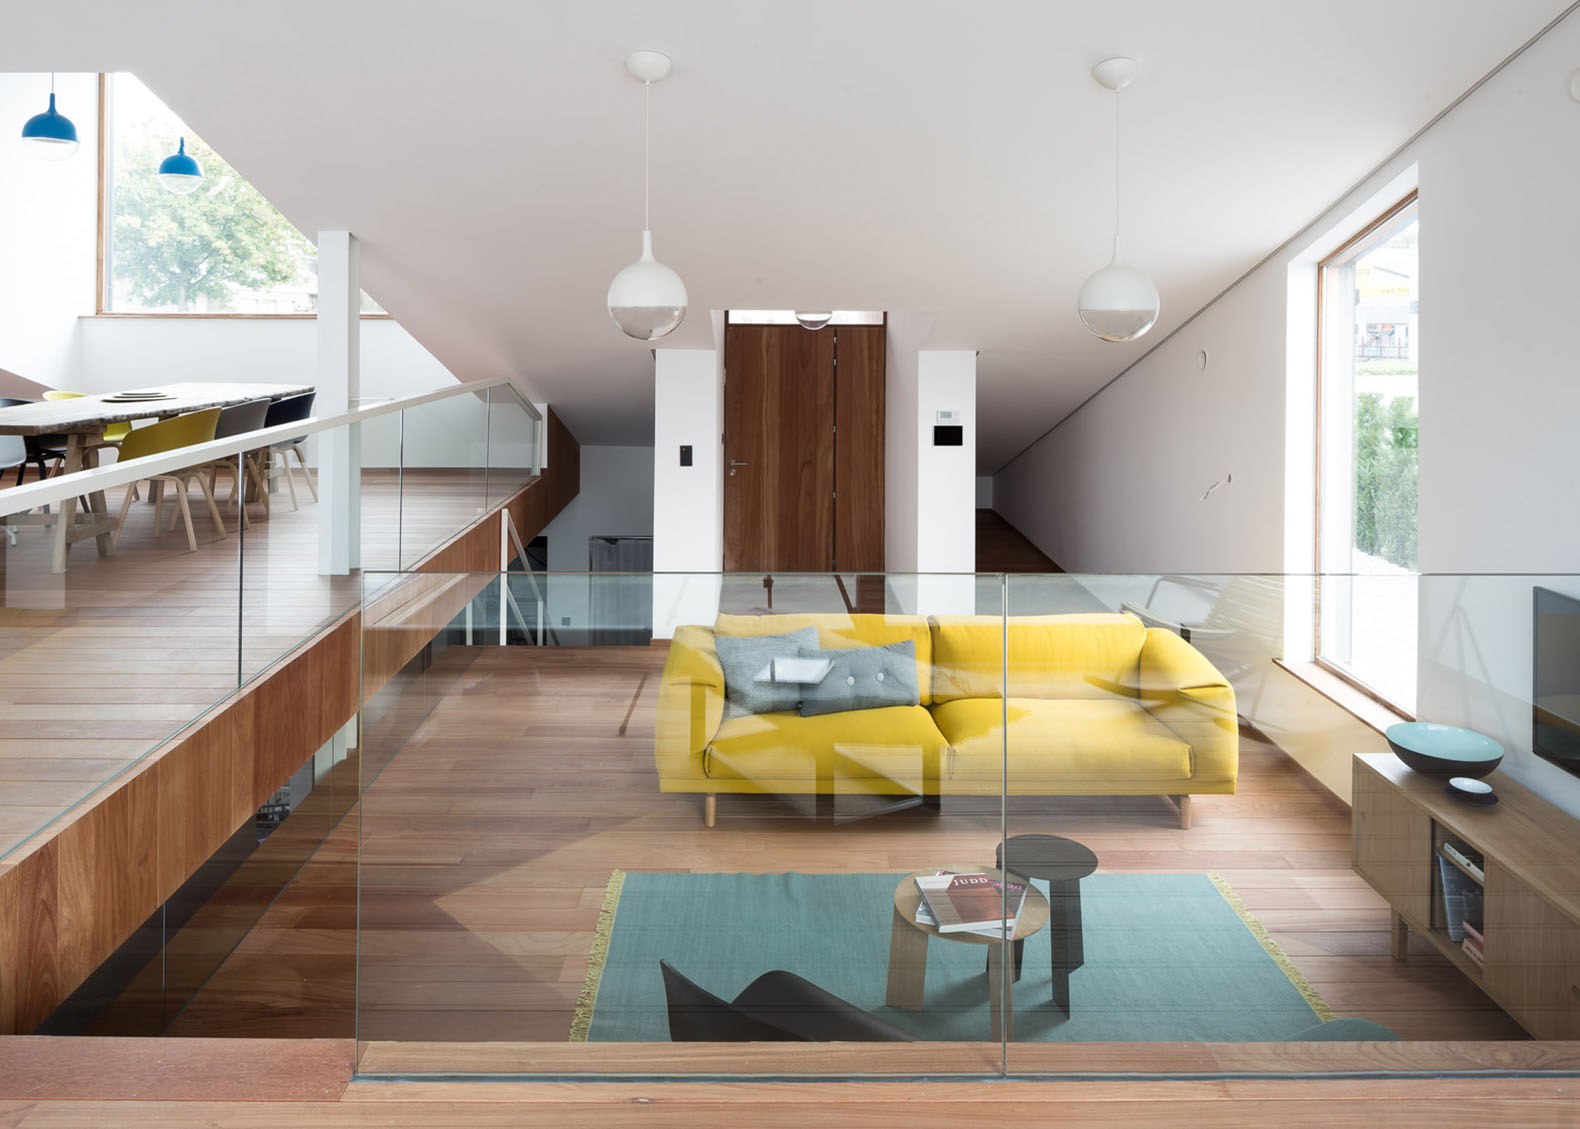 House Pibo, OYO Architects, Belgium, Green Roof, Underground House, Natural  Light